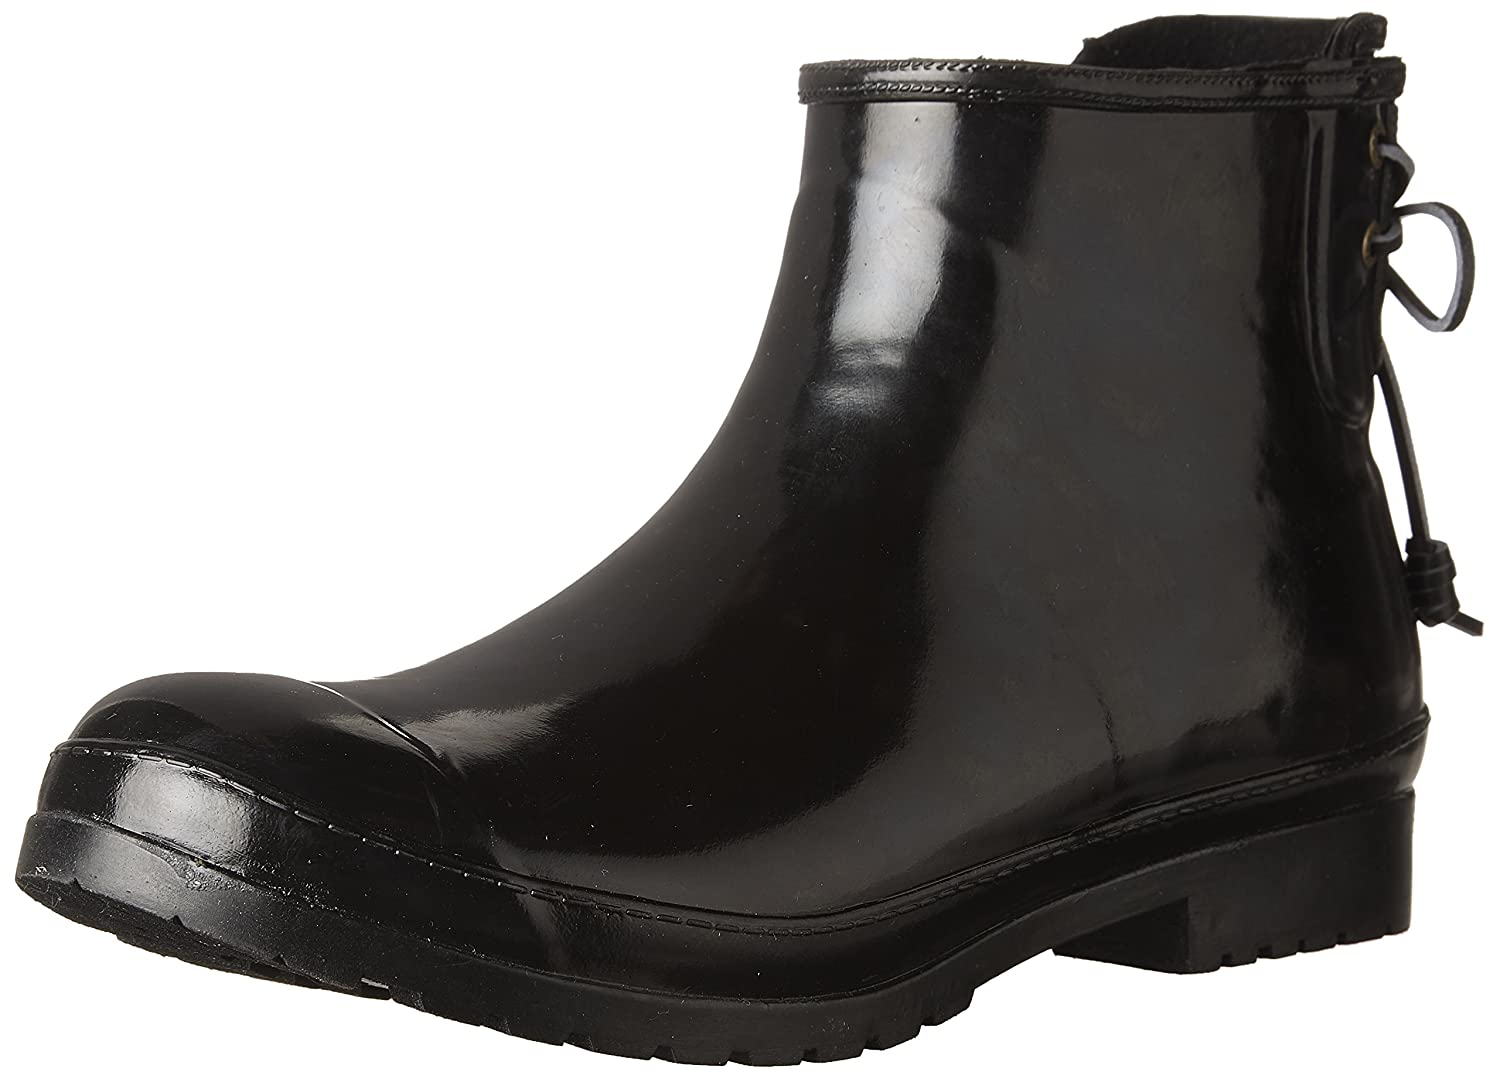 Sperry Top-Sider Women's Walker 7 Turf Rain Boot B01N1UFXB6 7 Walker M US|Black a58d80